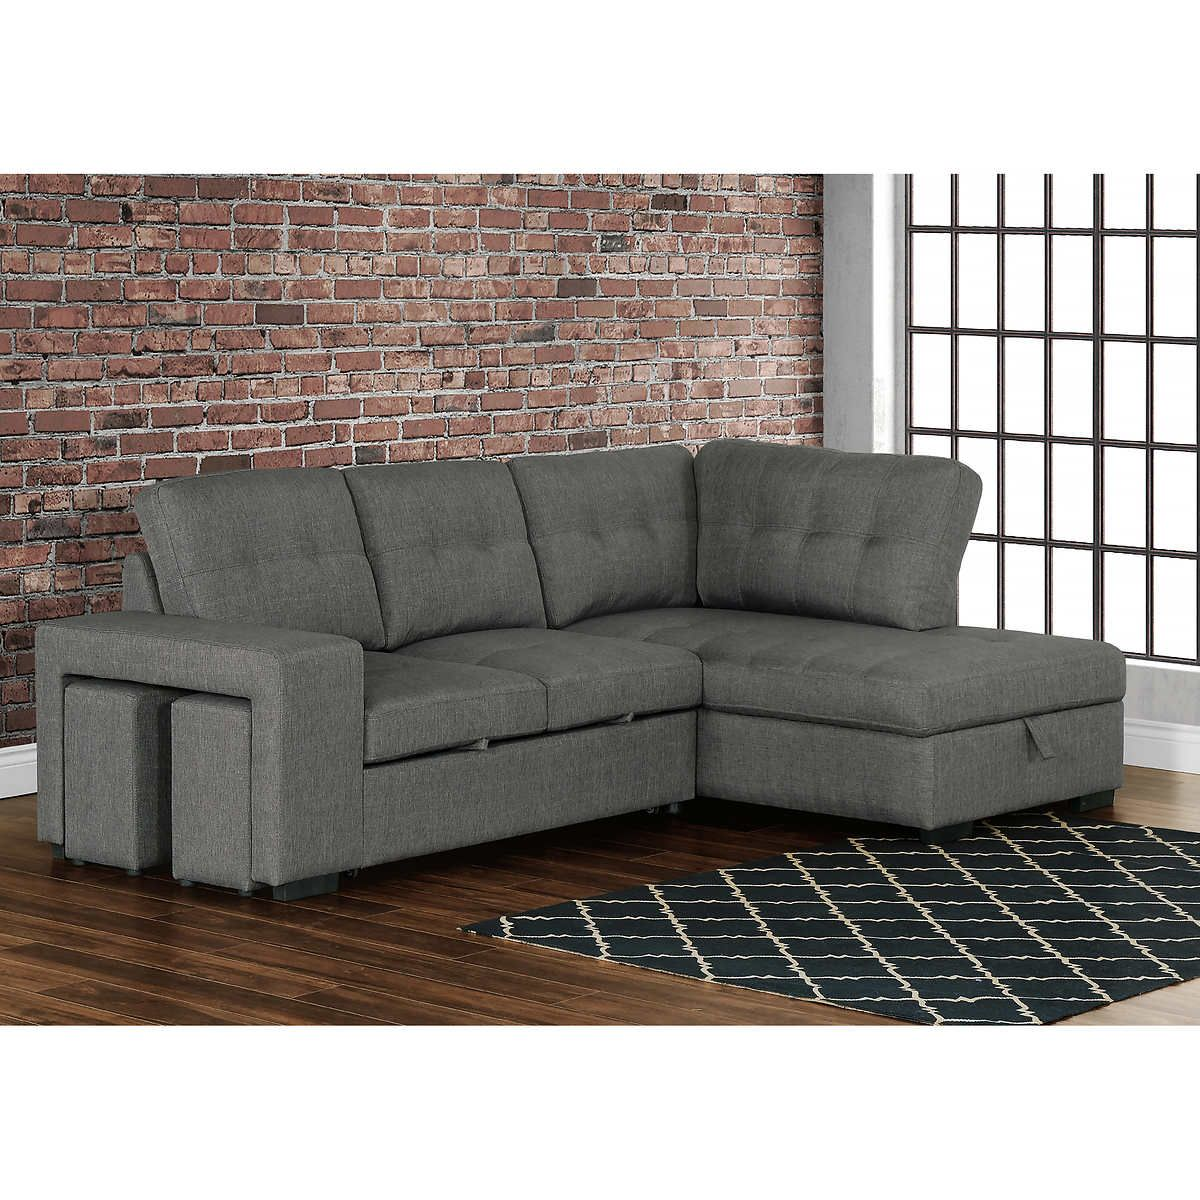 Pin By Bhairavy E On Dream House Sofa Bed With Storage Sofa Bed Sectional